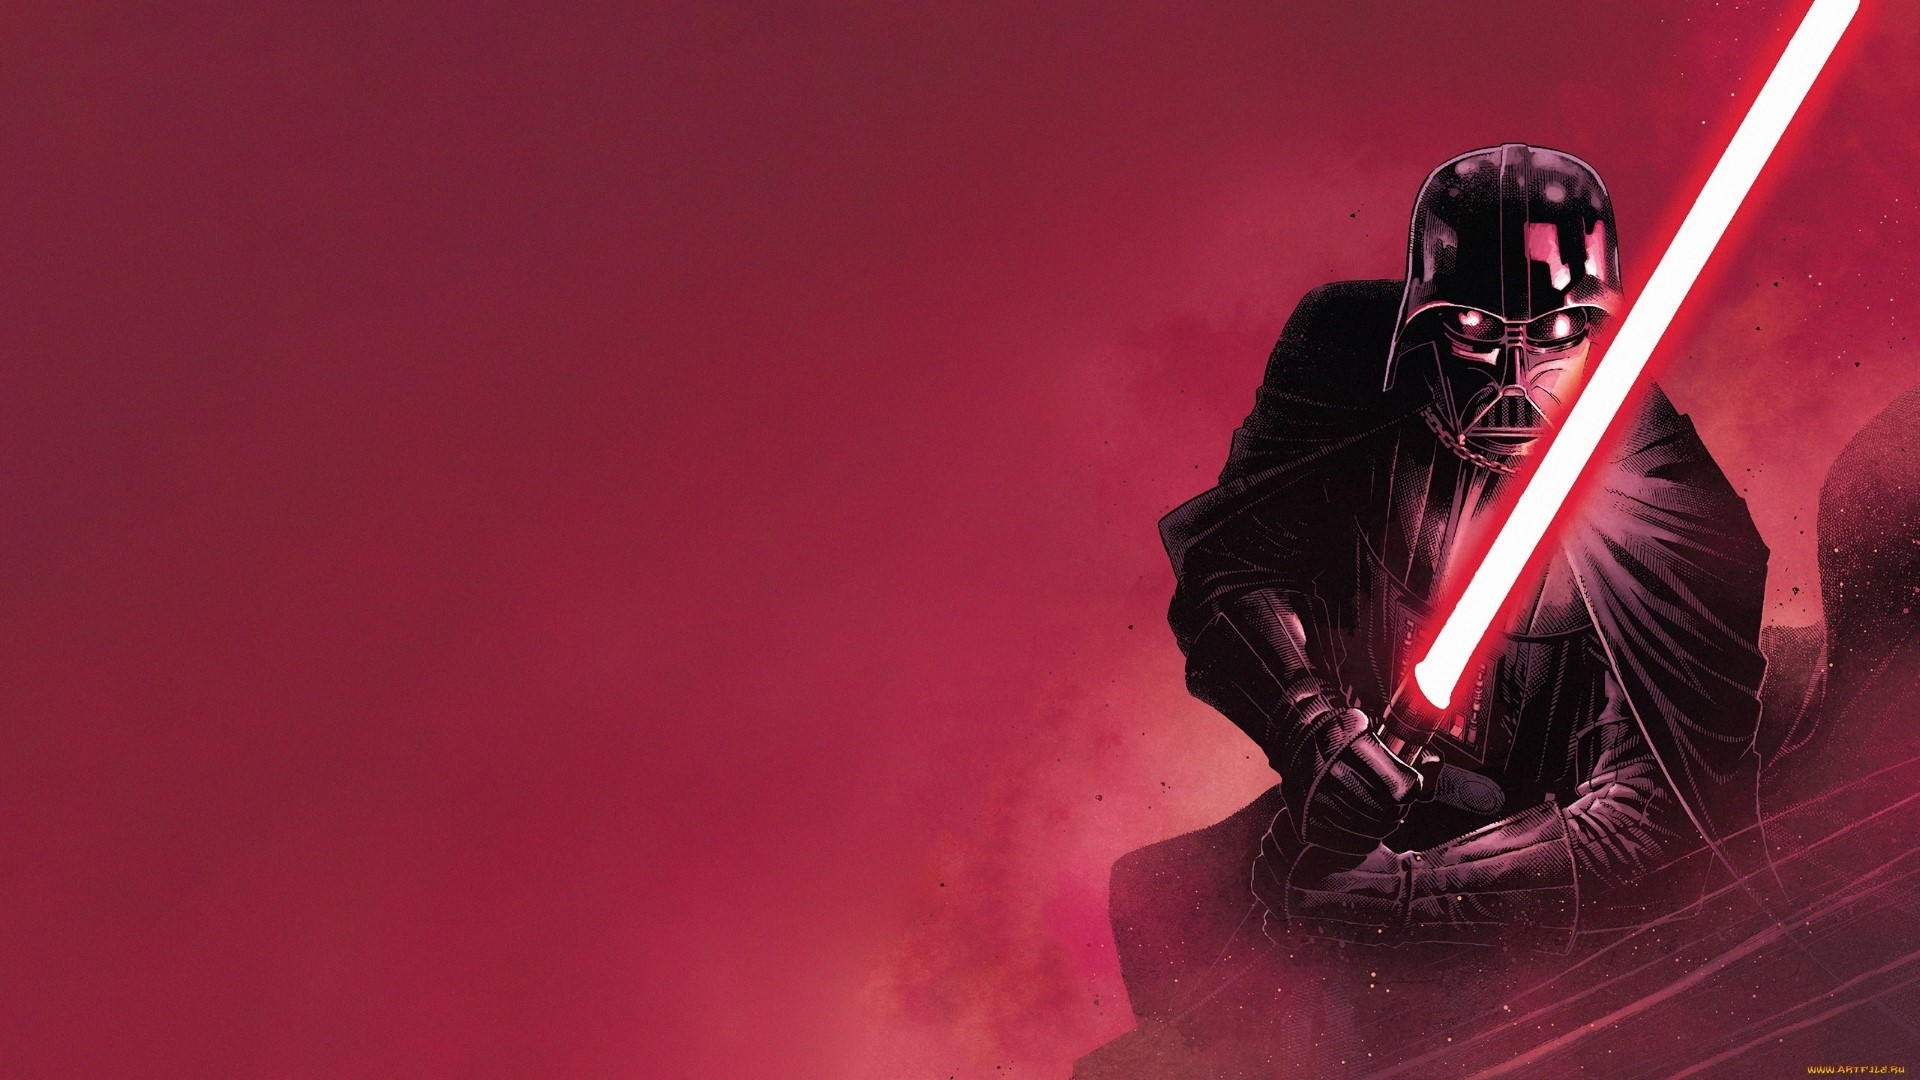 Darth Vader Wallpaper Download Full